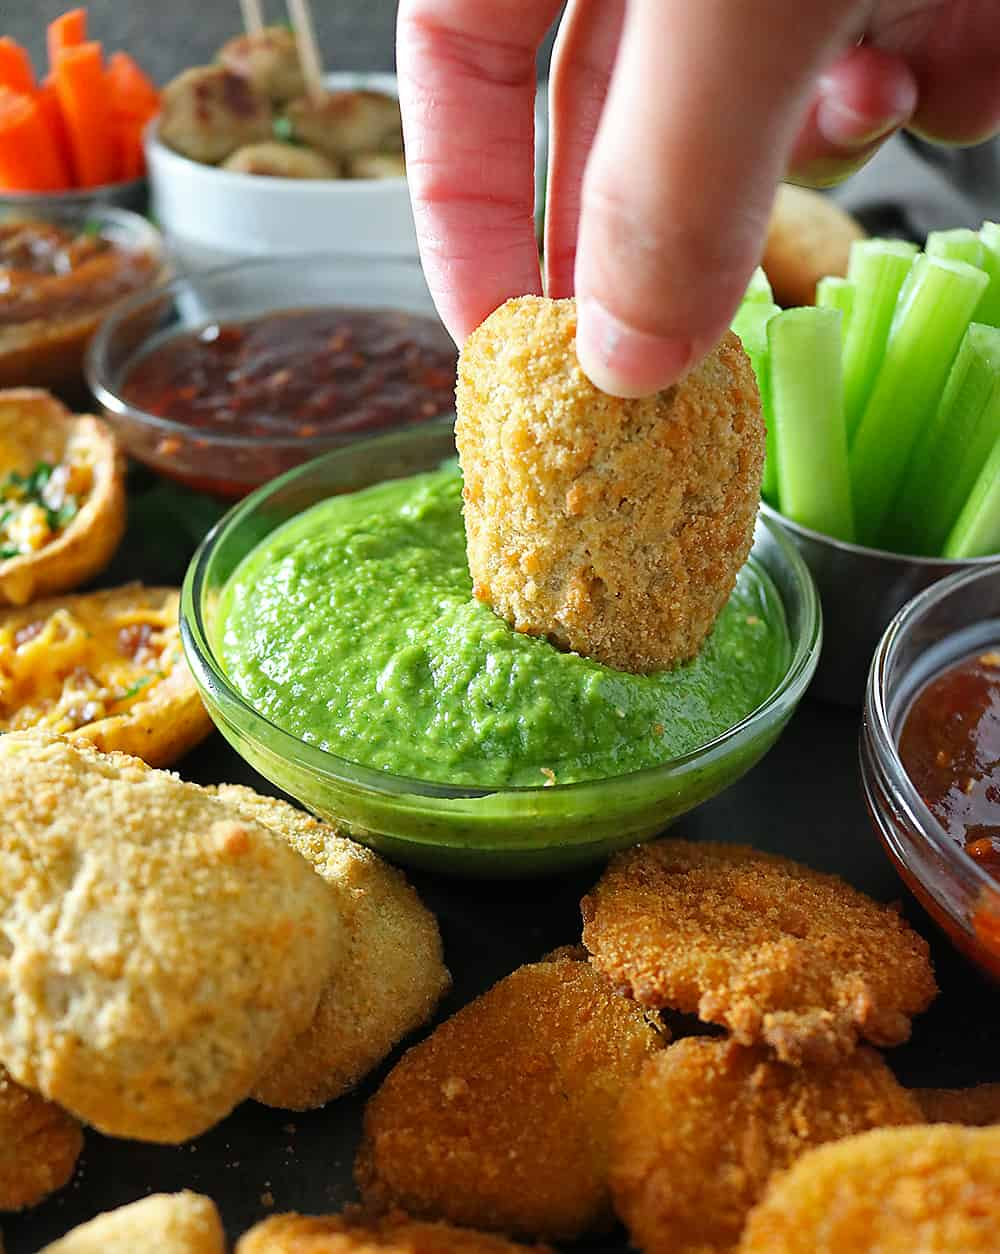 Delicious Spicy Green Sauce And FarmRich Jalapeno Poppers.